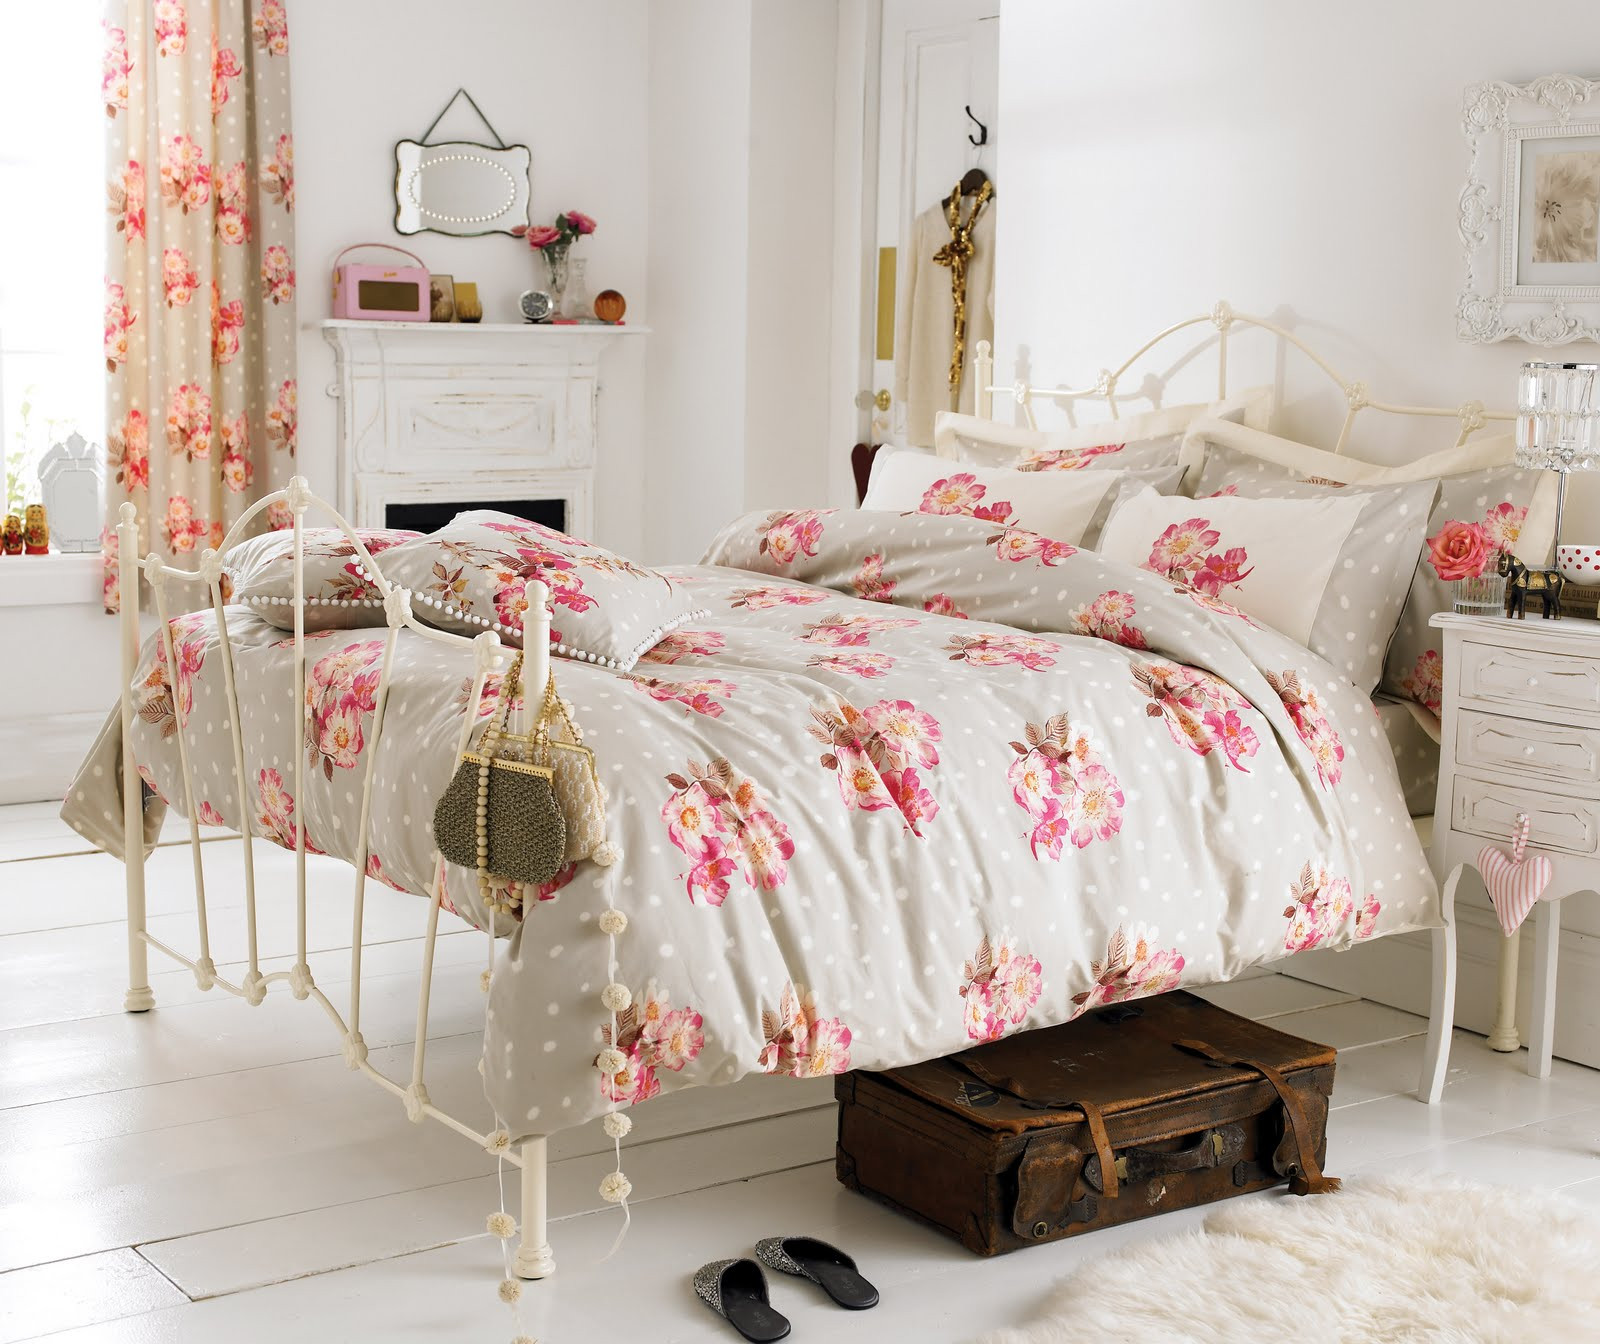 Best ideas about Shabby Chic Bedroom Sets . Save or Pin Vintage Your Room with 9 Shabby Chic Bedroom Furniture Now.